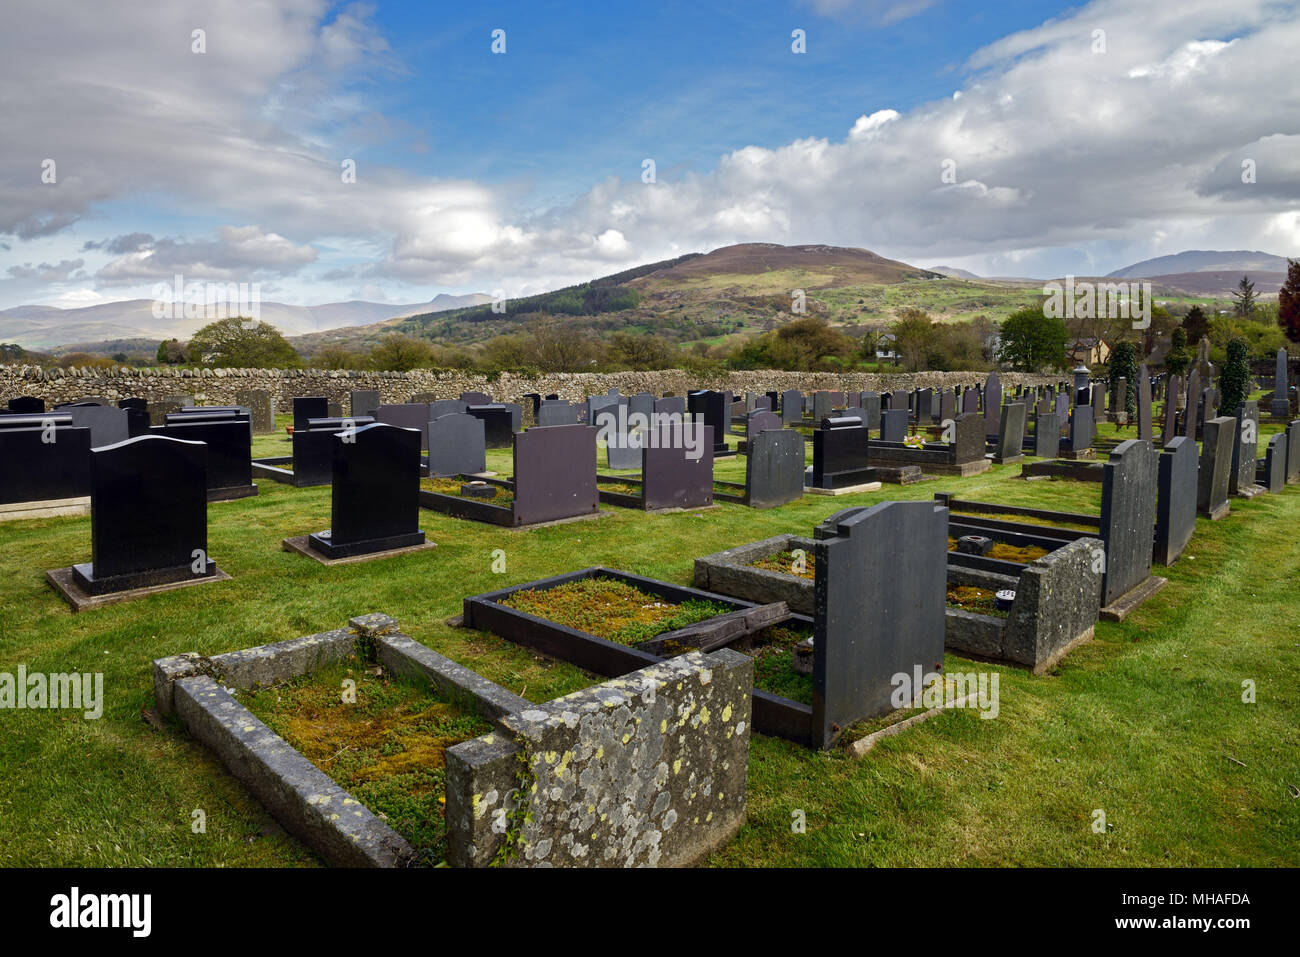 St Cedol's Graveyard, Pentir, North Wales, with the mountain of Moel y Ci in the background. Stock Photo